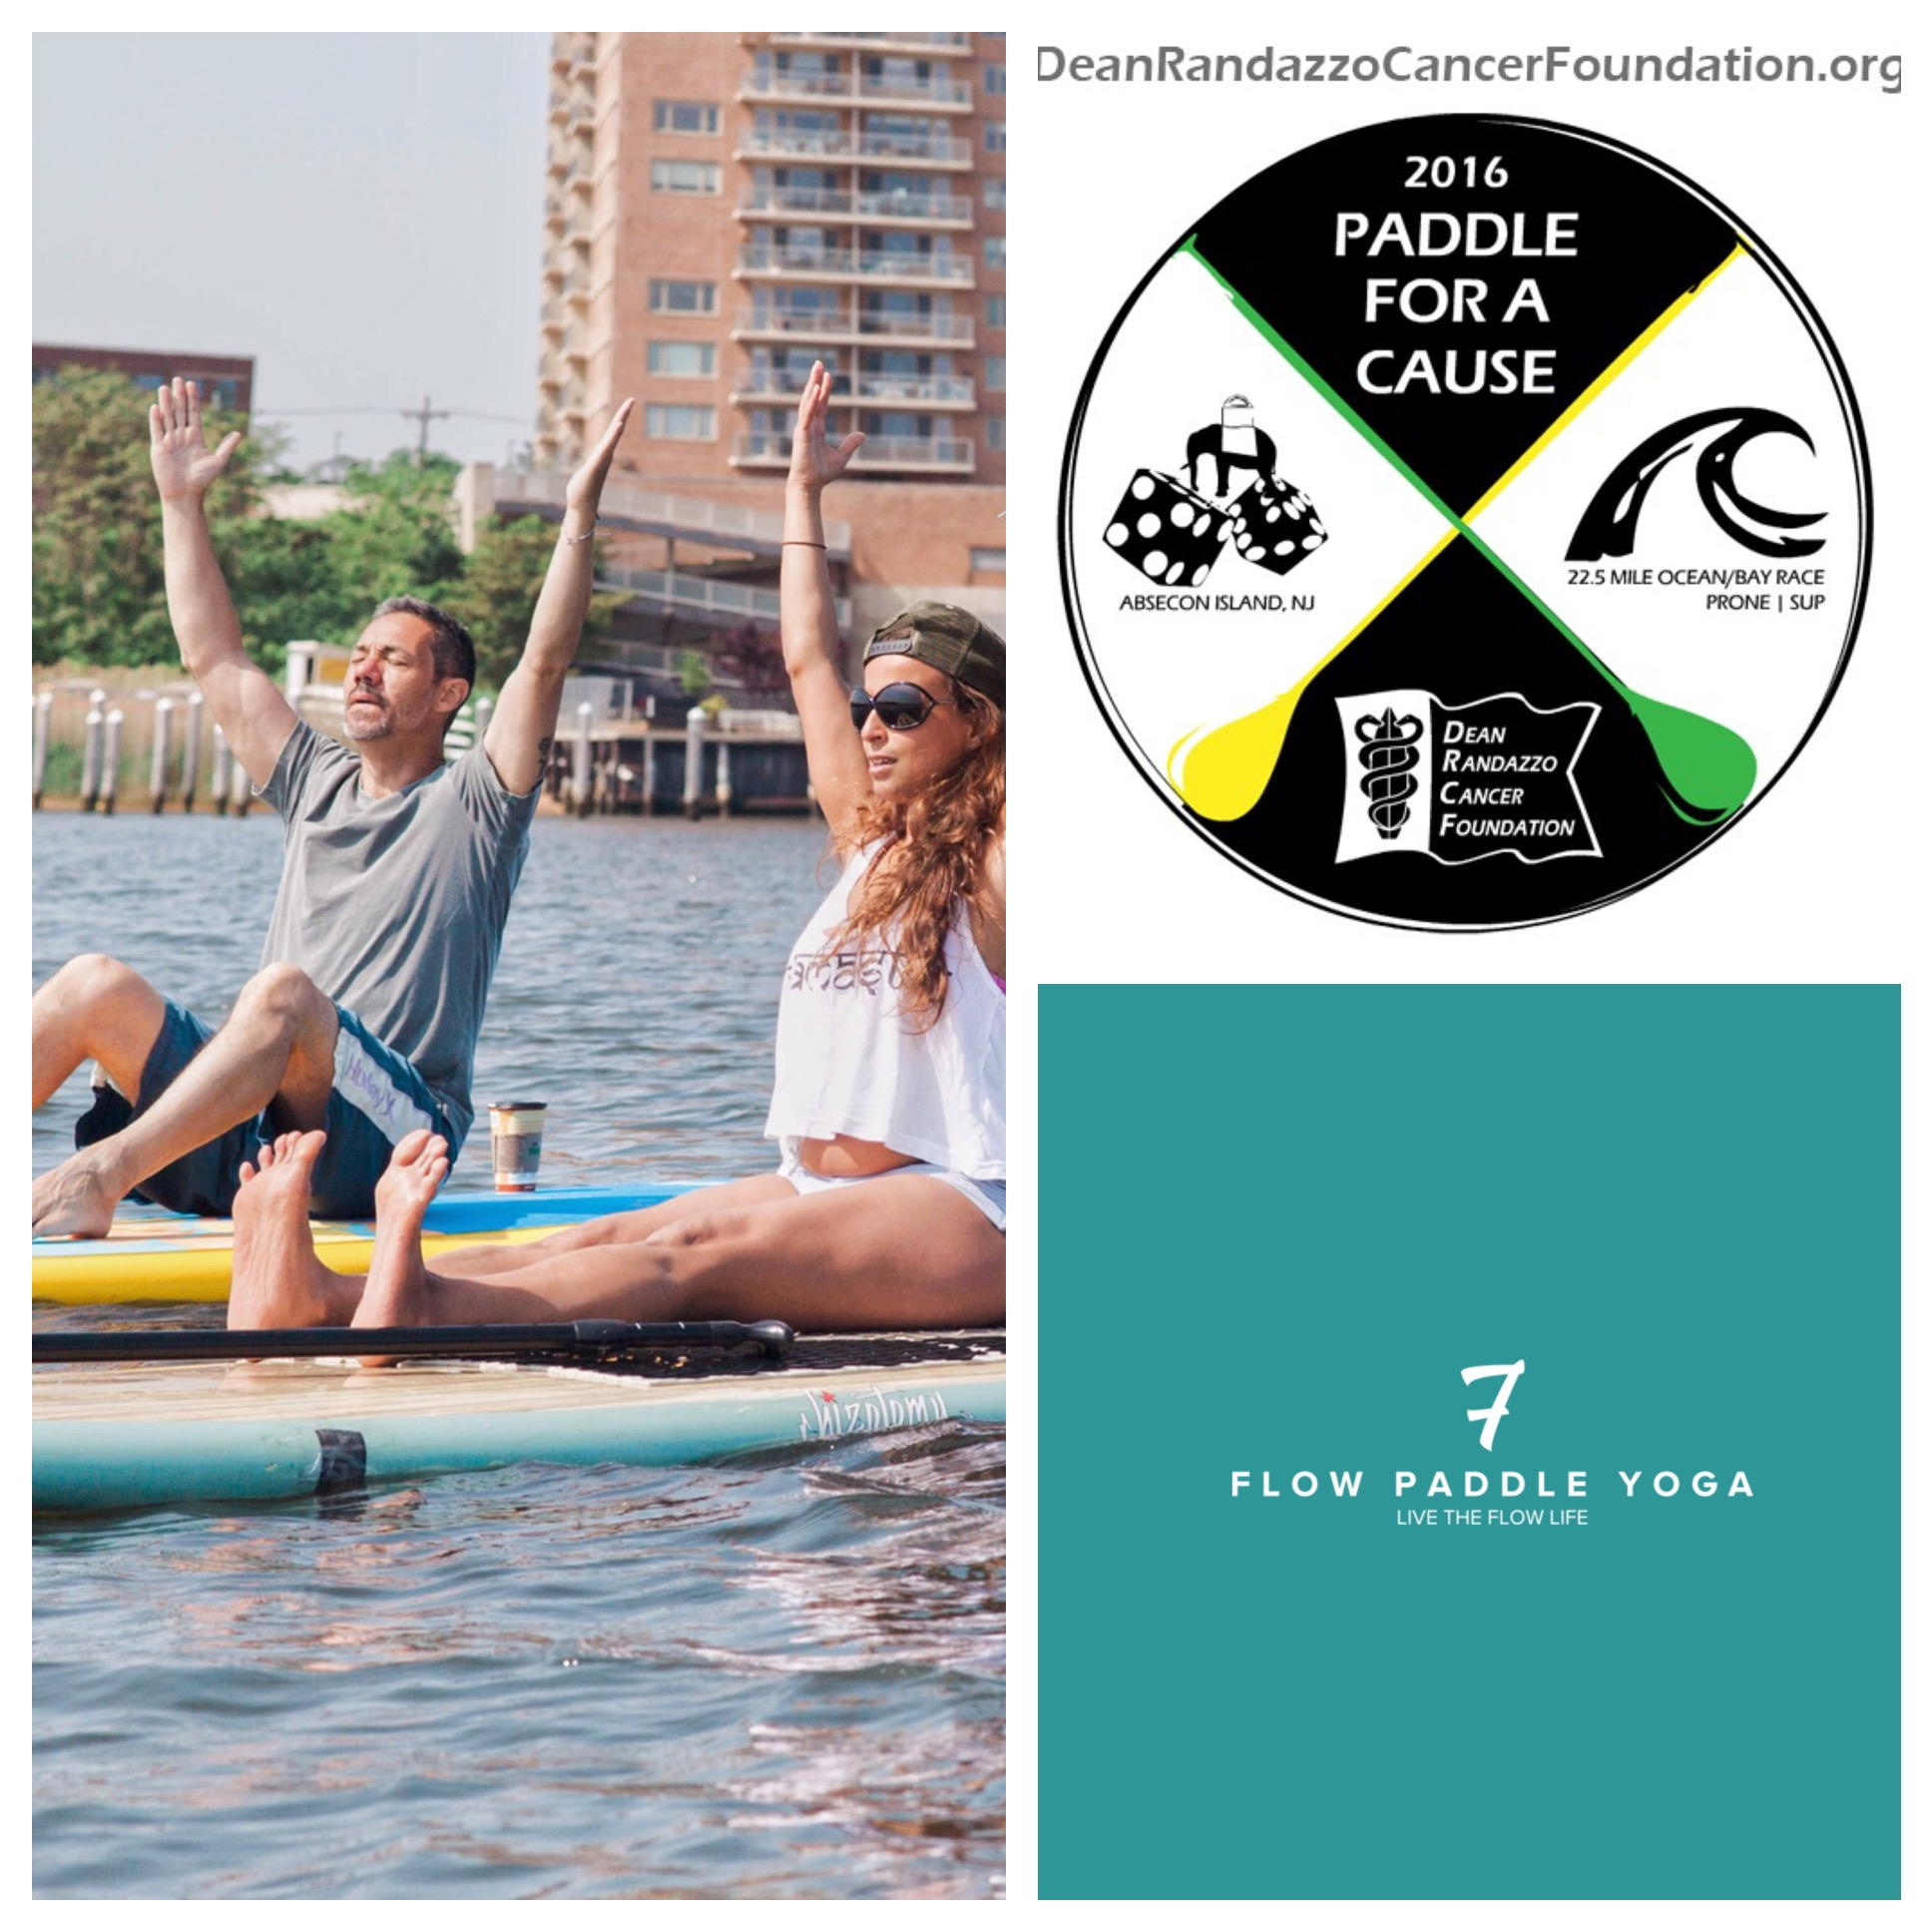 Paddle for a Cause